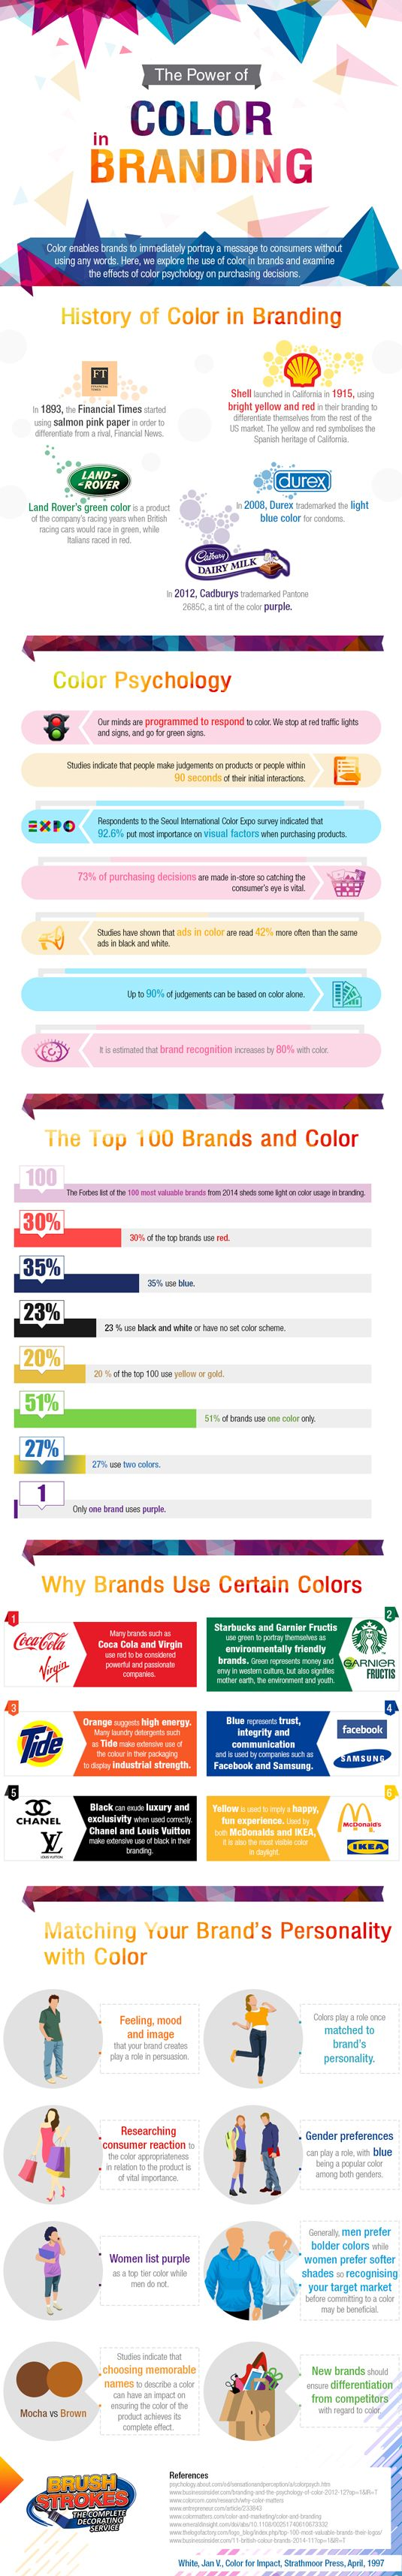 info-graphic of branding color